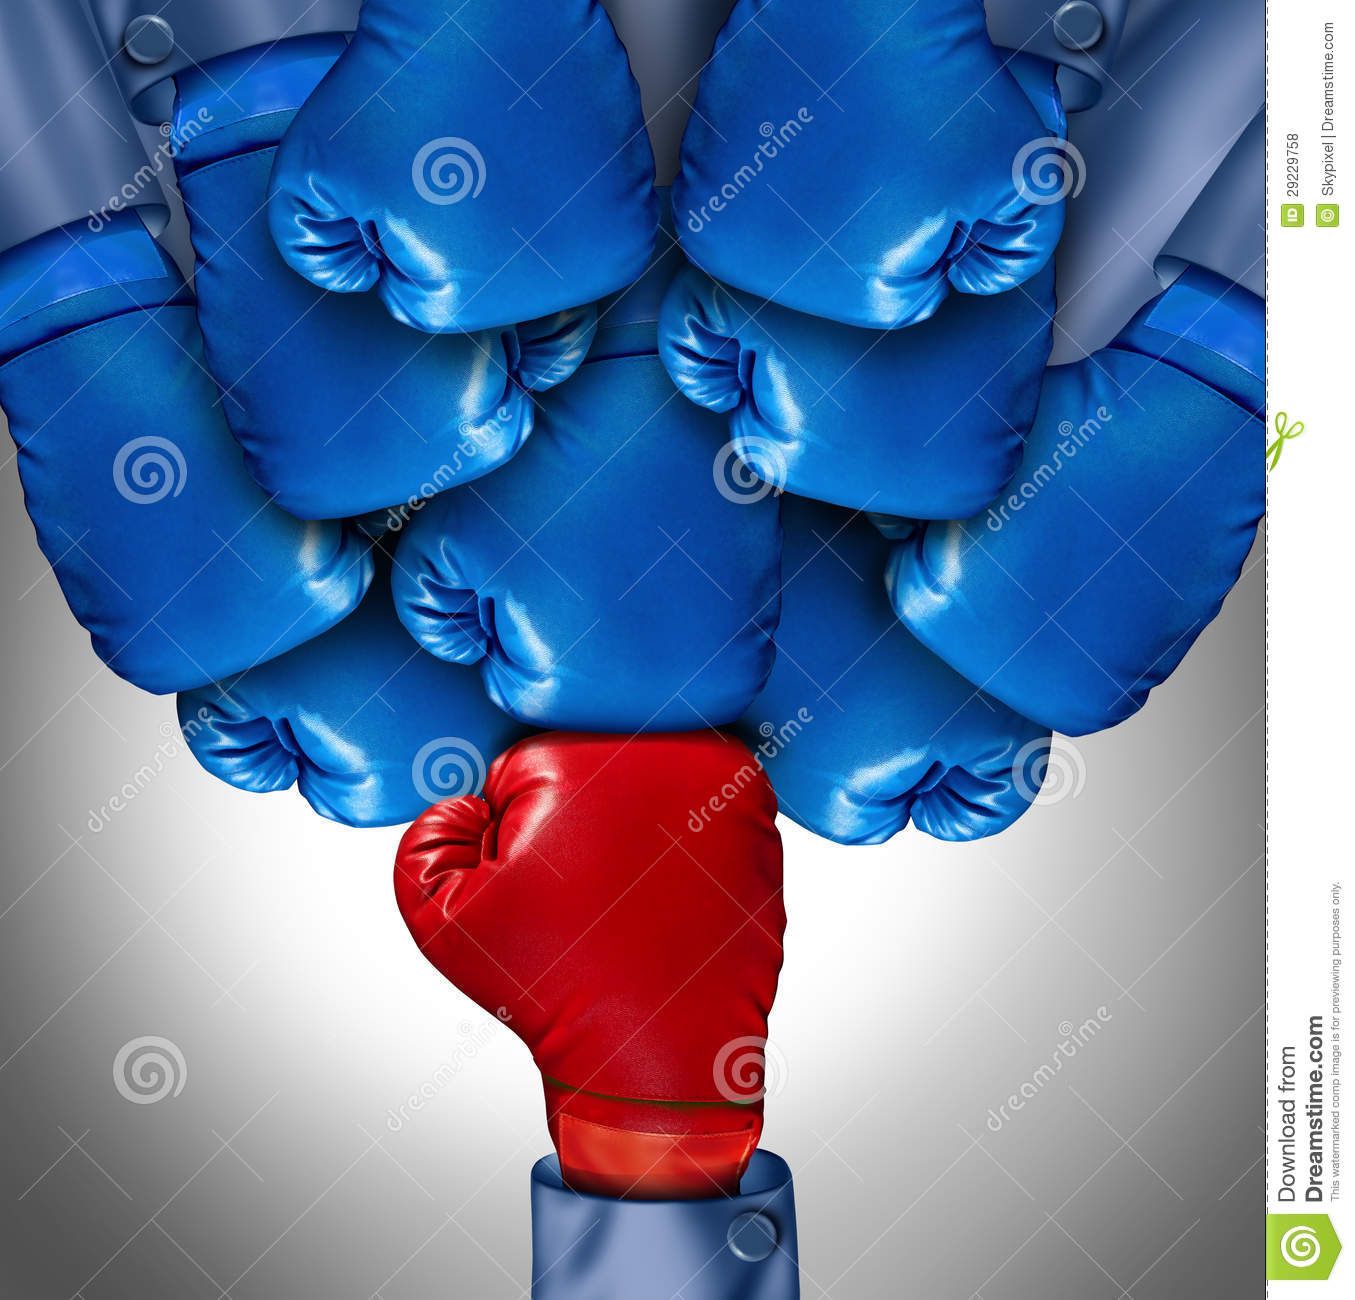 adversity and conquering challenges as a group of blue boxing gloves ...